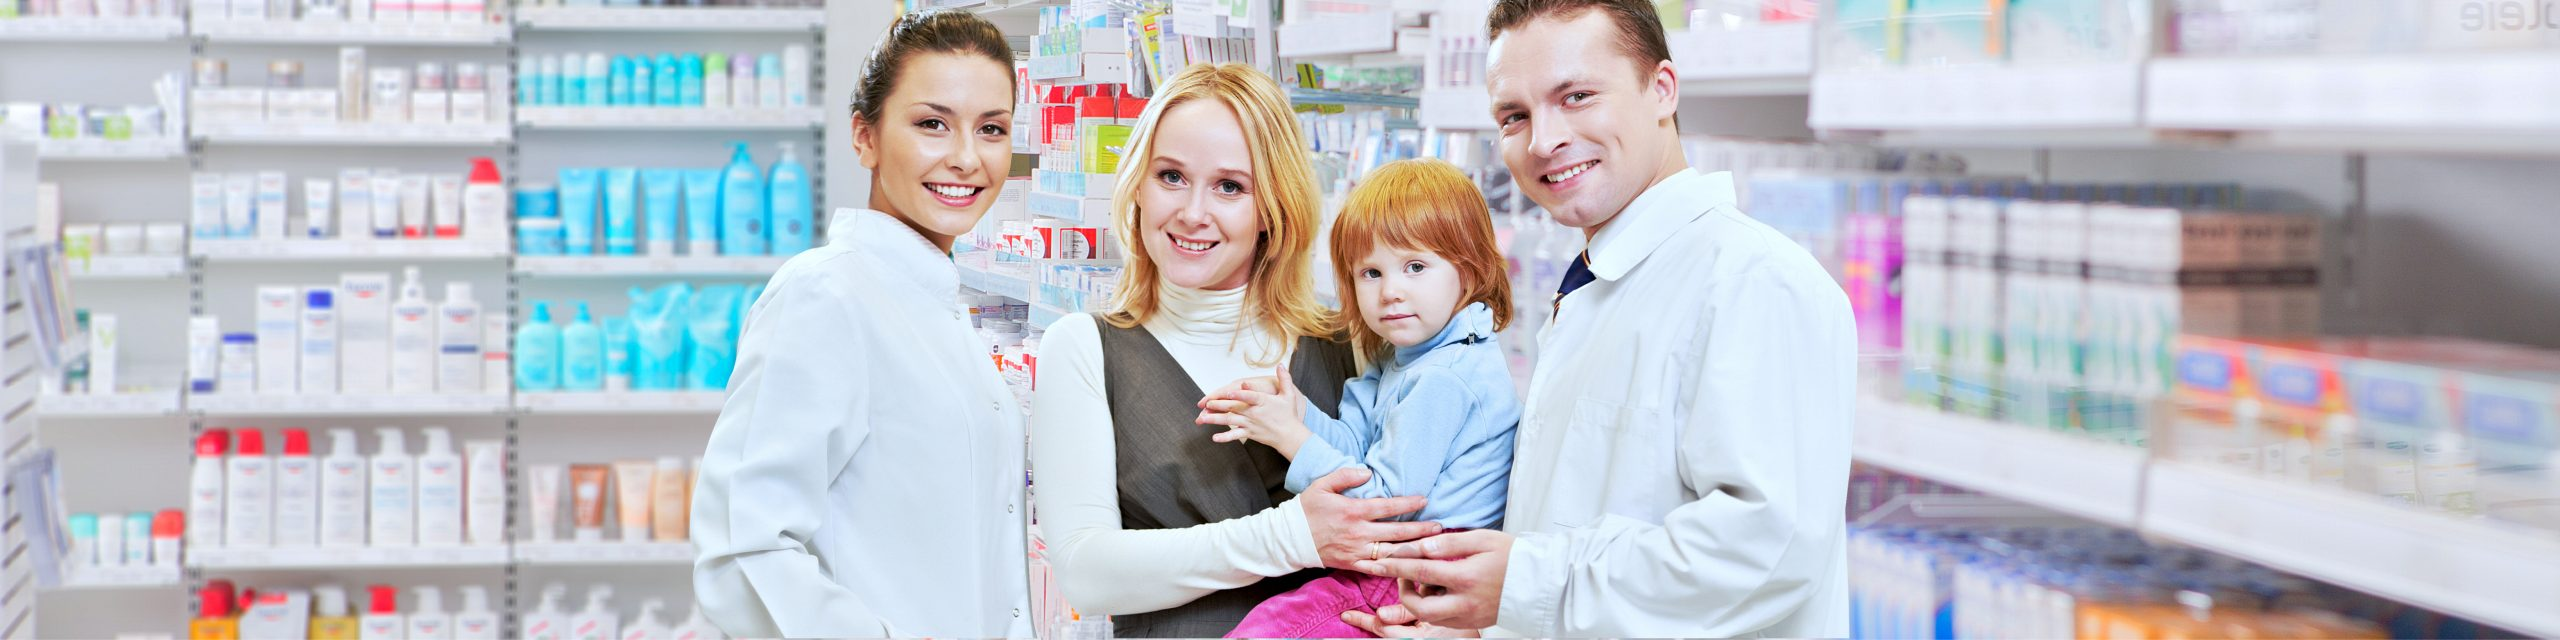 pharmacists with a woman carrying a child